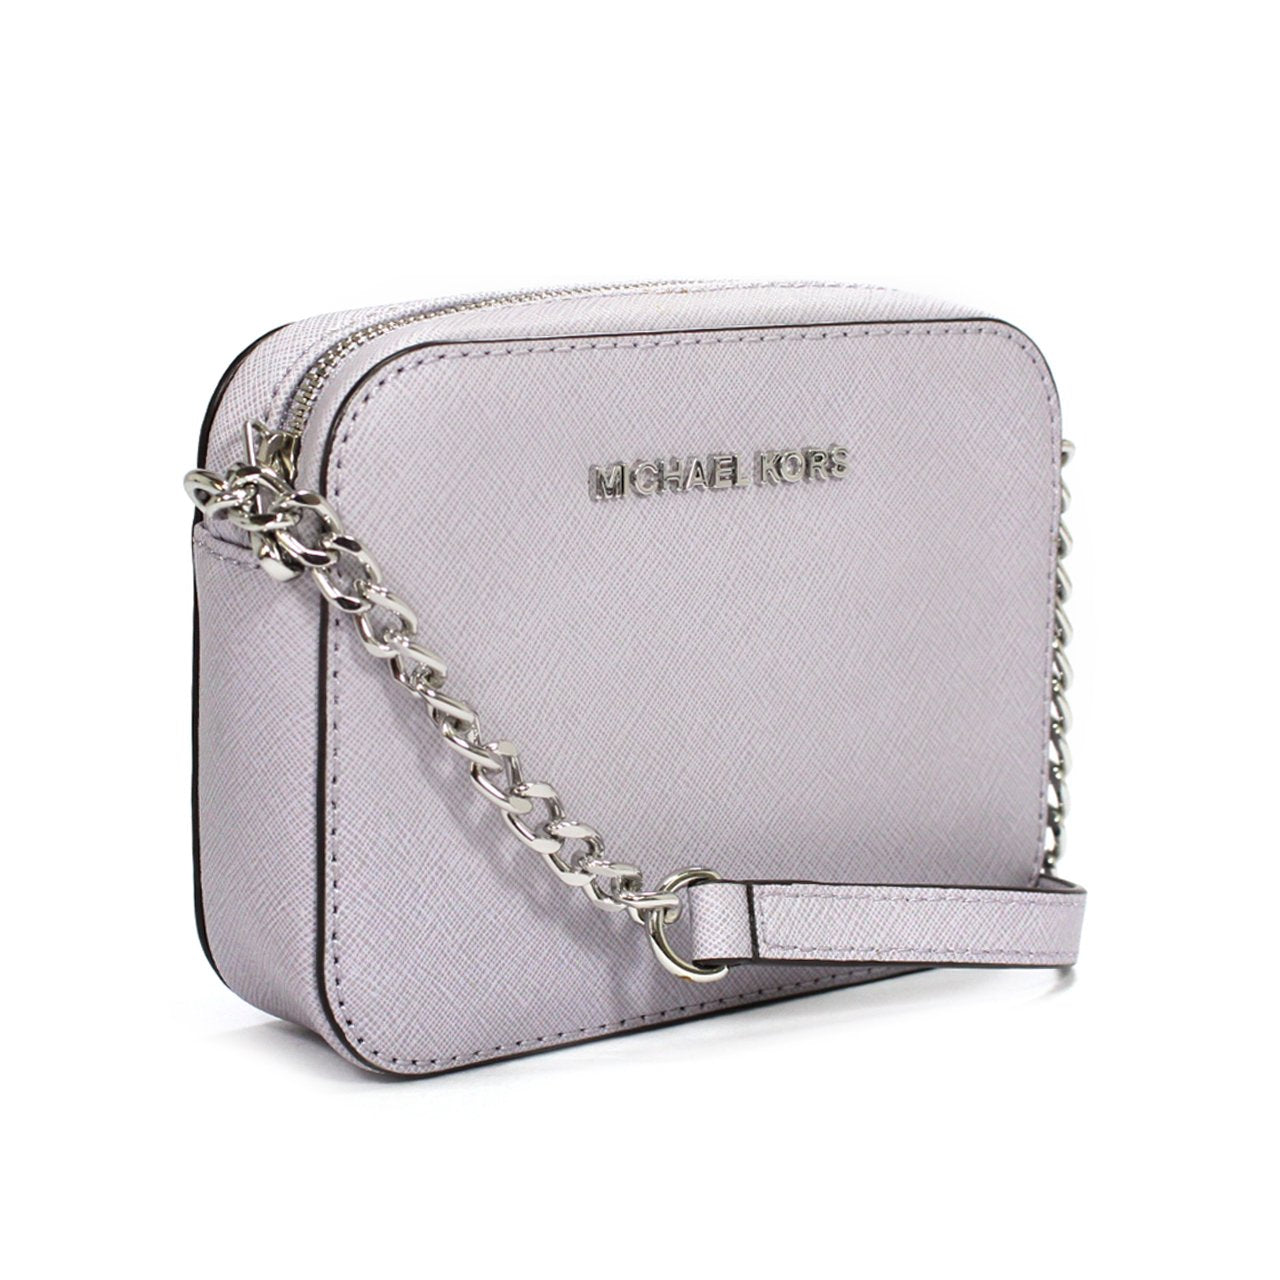 1791931ea Michael Kors Mini Jet Set Crossbody Bag-Online India at Galleria Di ...